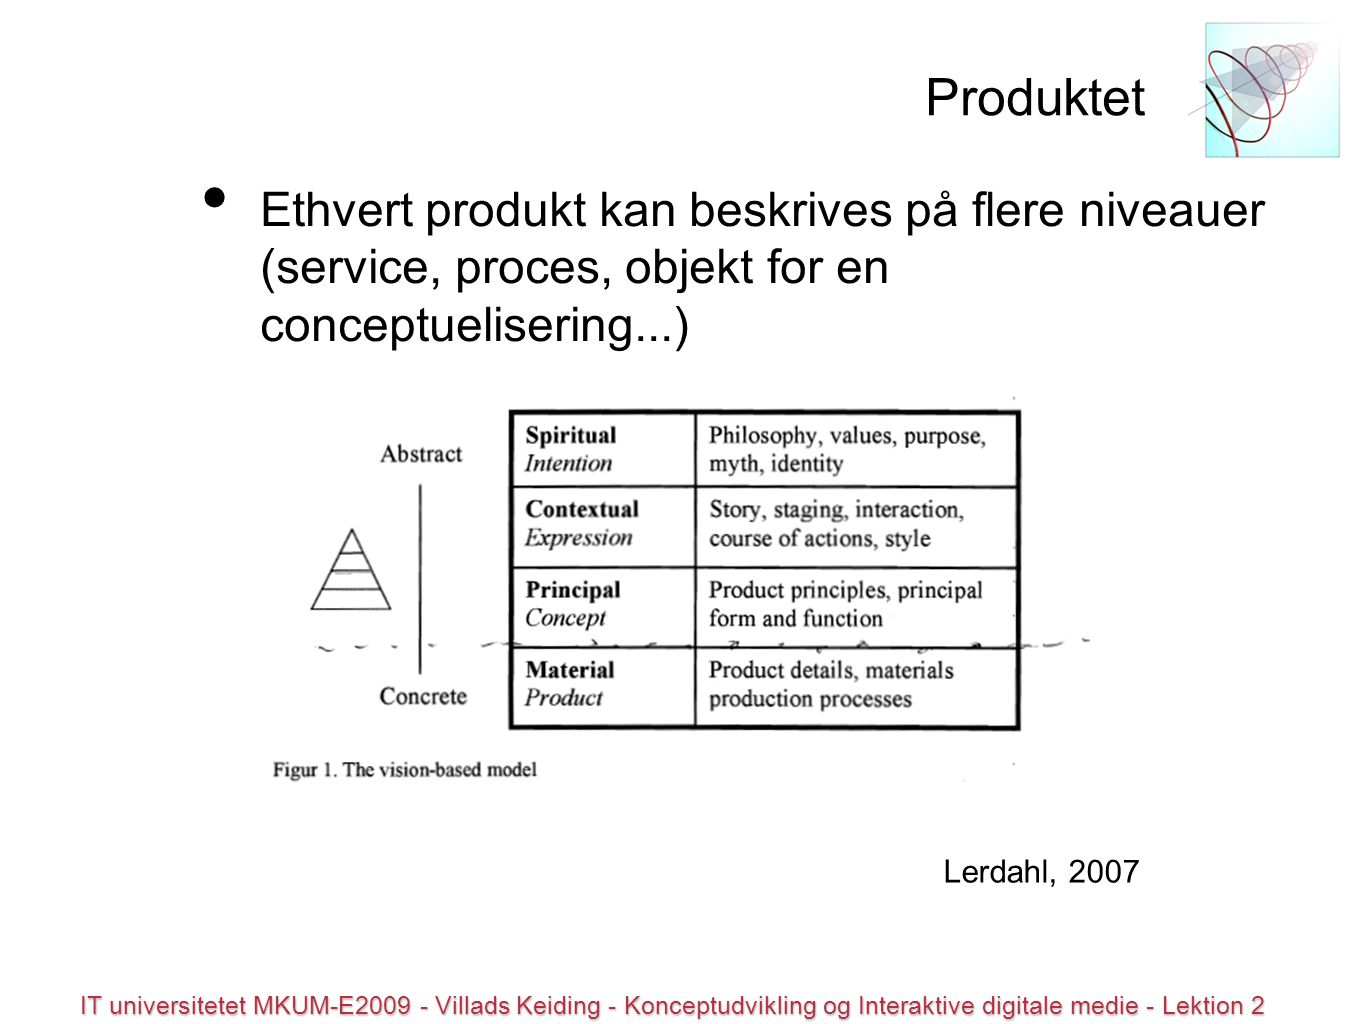 © all rights reserved IT universitetet MKUM-E2009 - Villads Keiding - Konceptudvikling og Interaktive digitale medie - Lektion 2 Produktet Ethvert produkt kan beskrives på flere niveauer (service, proces, objekt for en conceptuelisering...) Lerdahl, 2007